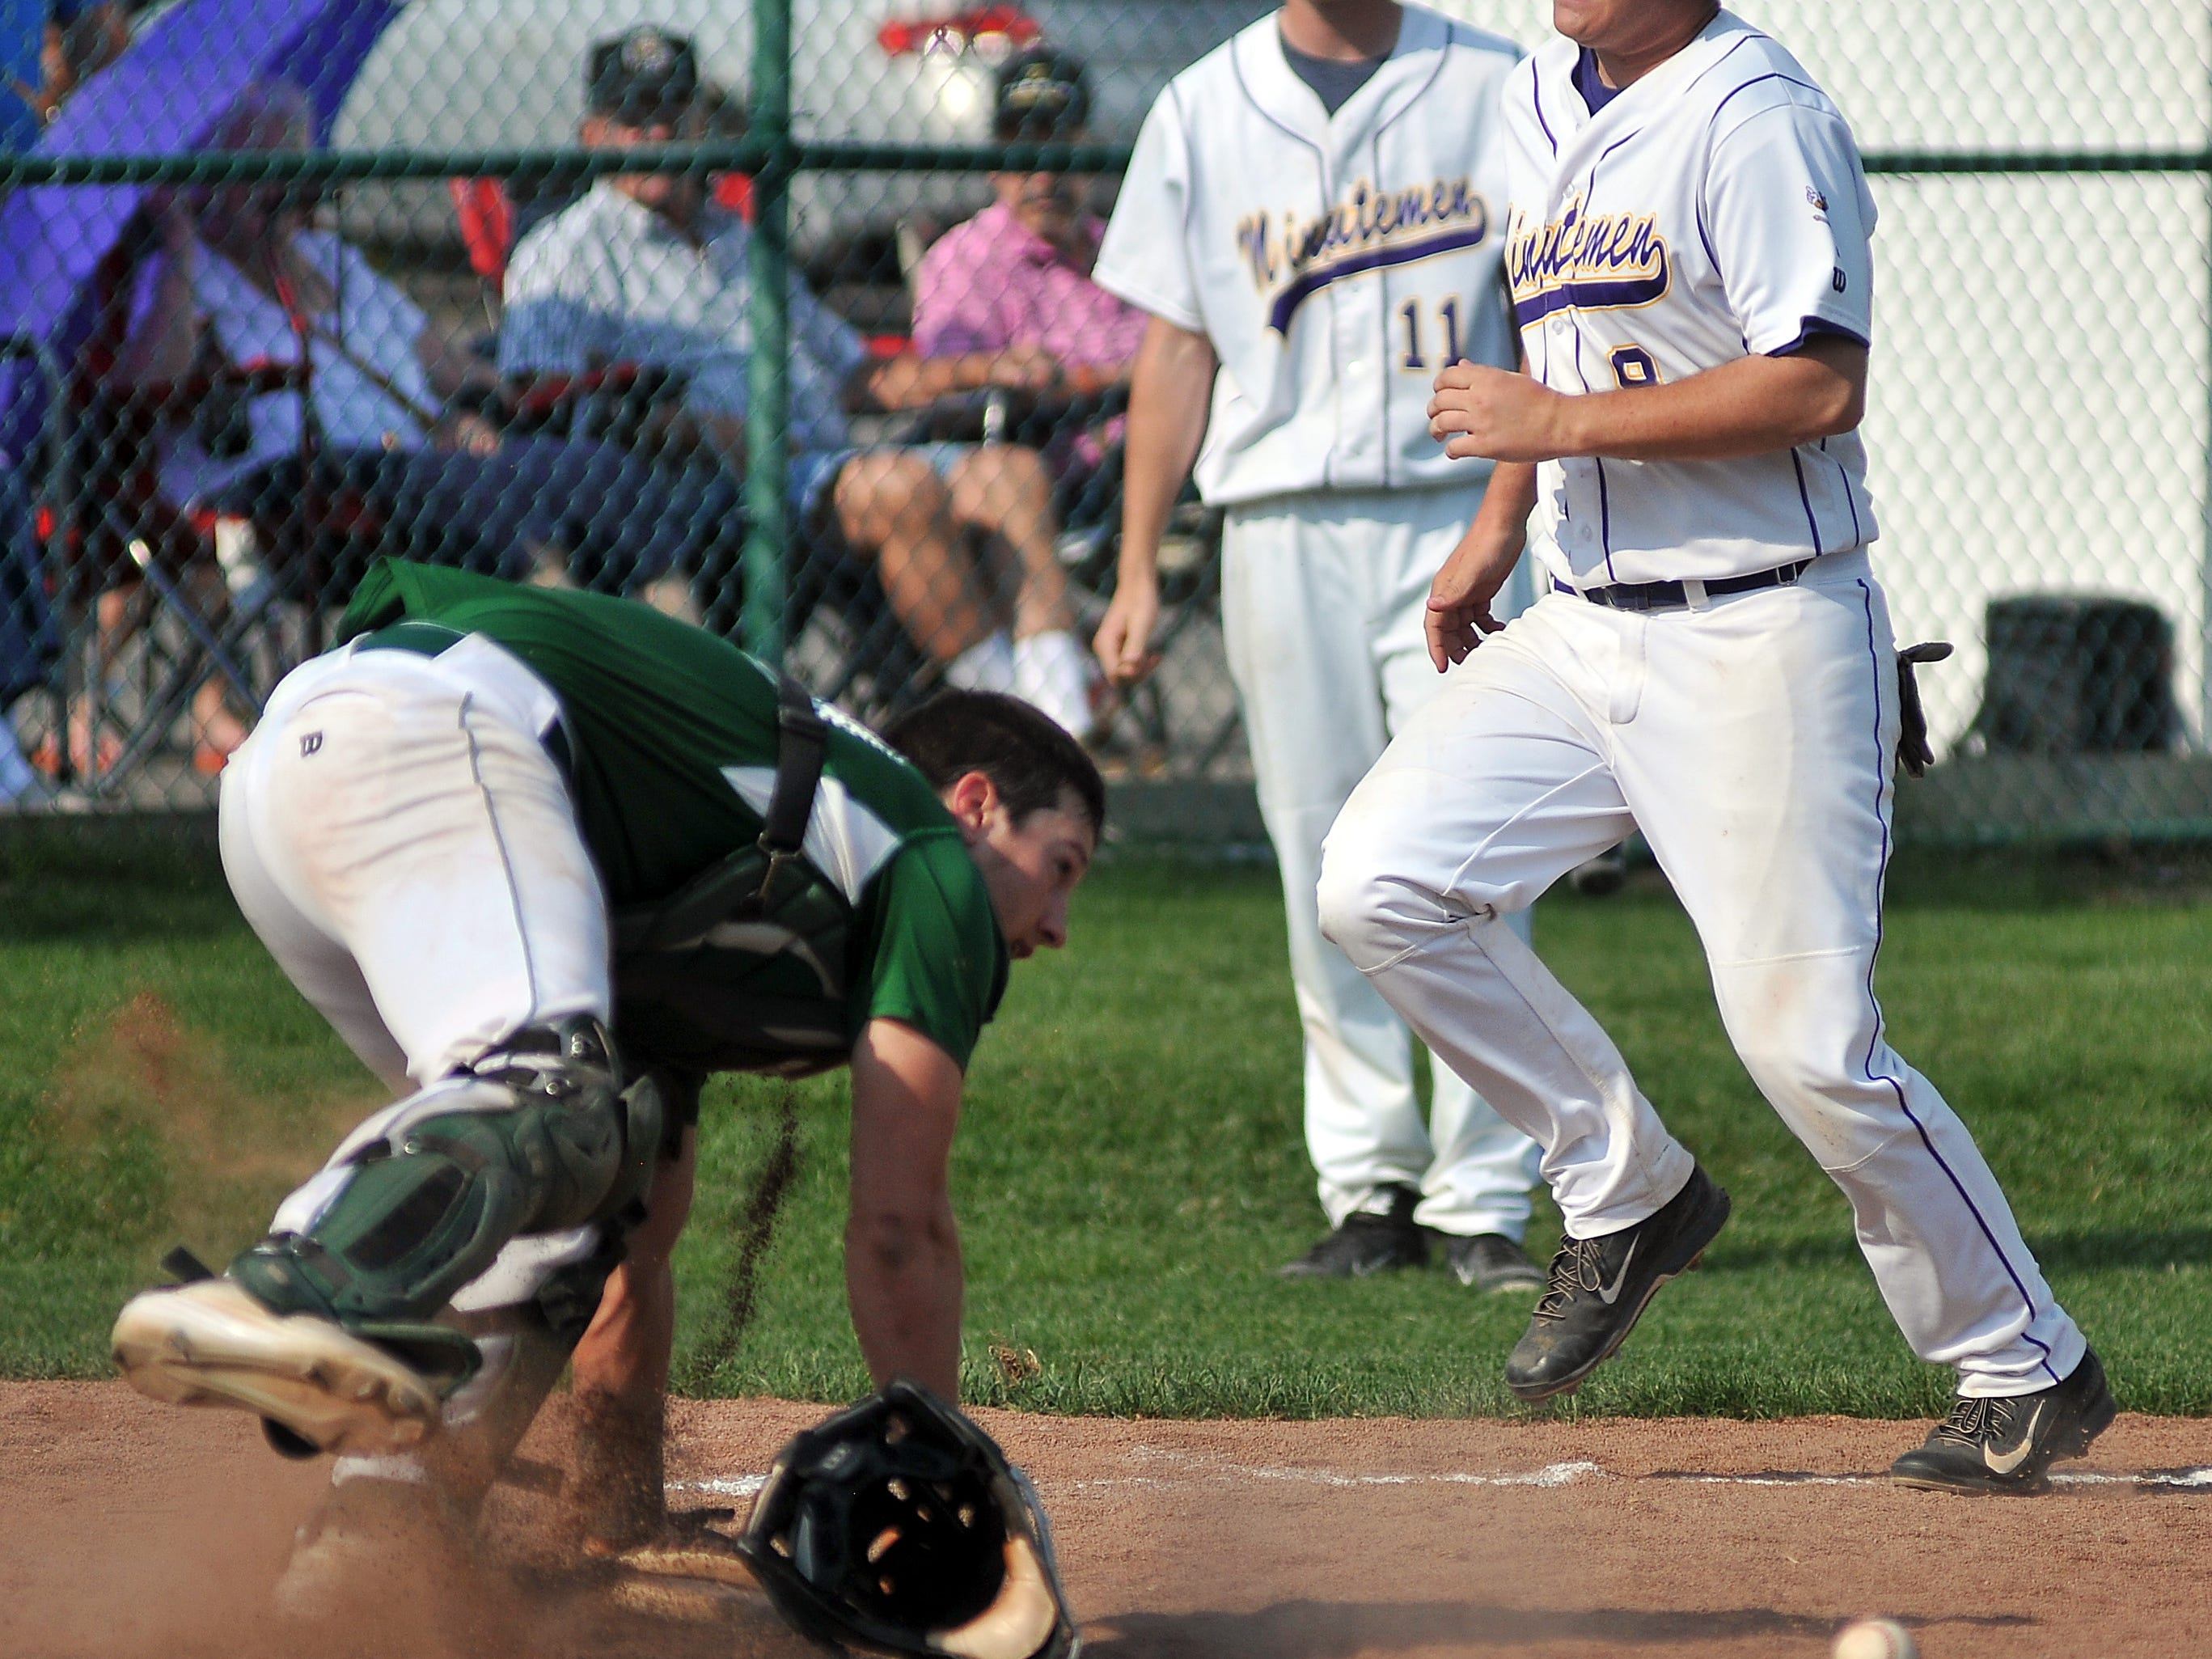 Madison's catcher can't come up with the ball as Lexington's Josh Verspoor crosses home plate for a run during their game Thursday at Lexington.